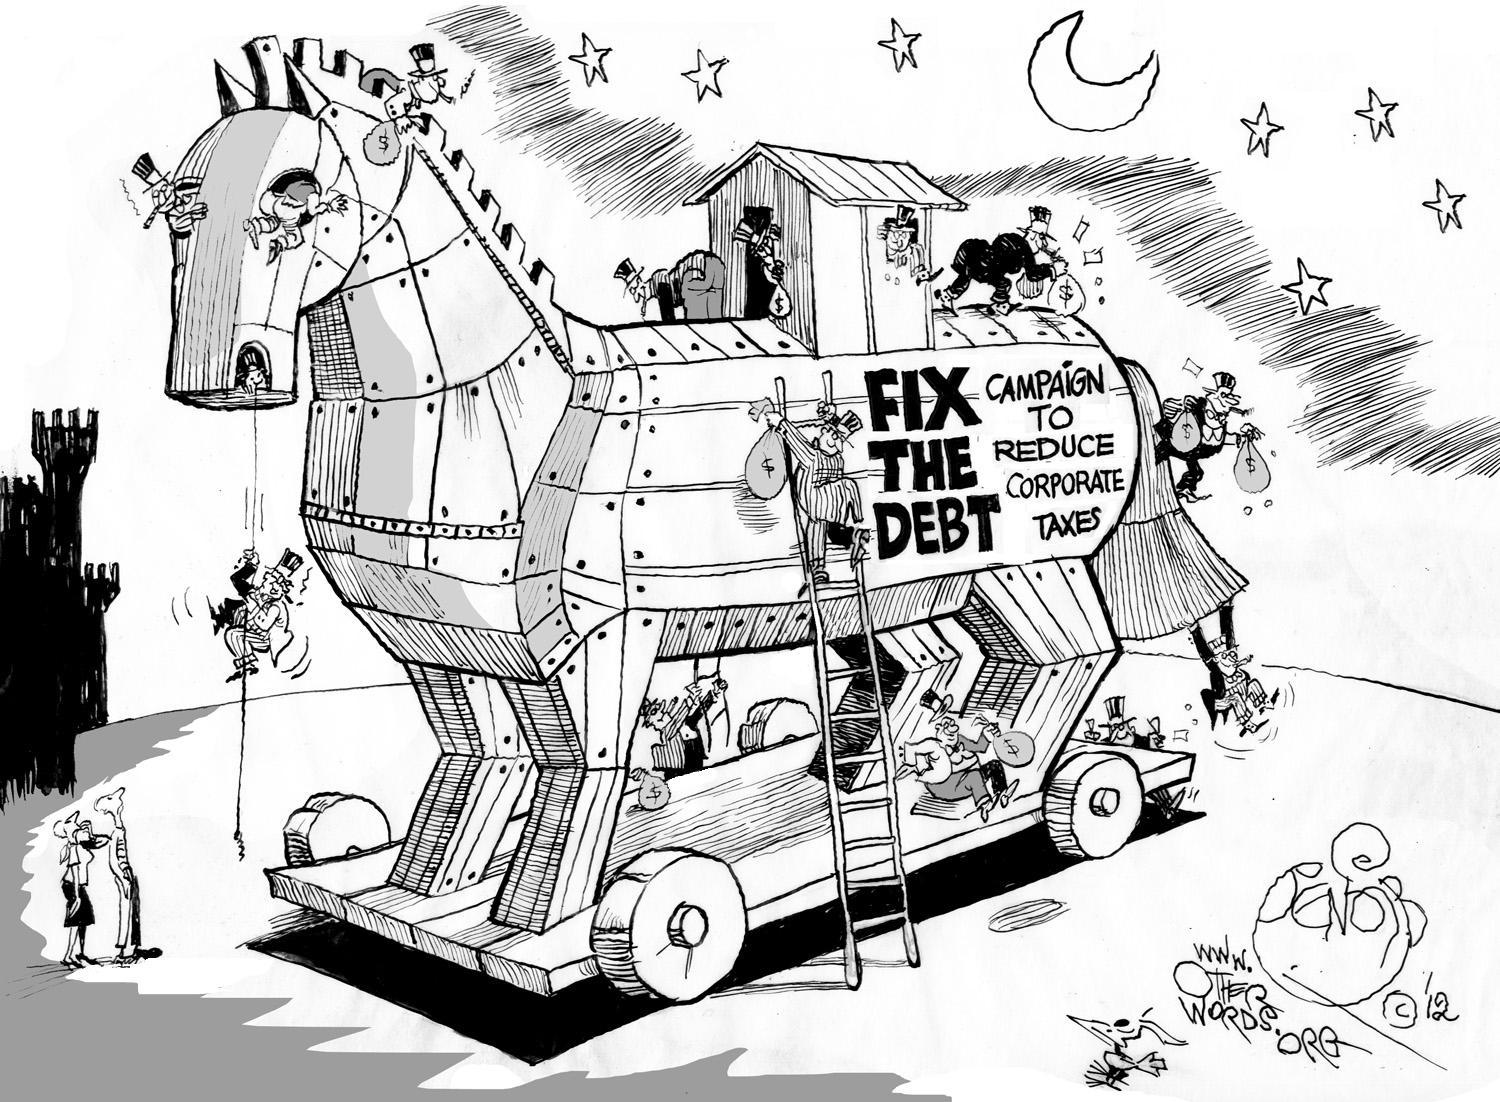 The Trojan Horse in the Debt Debate